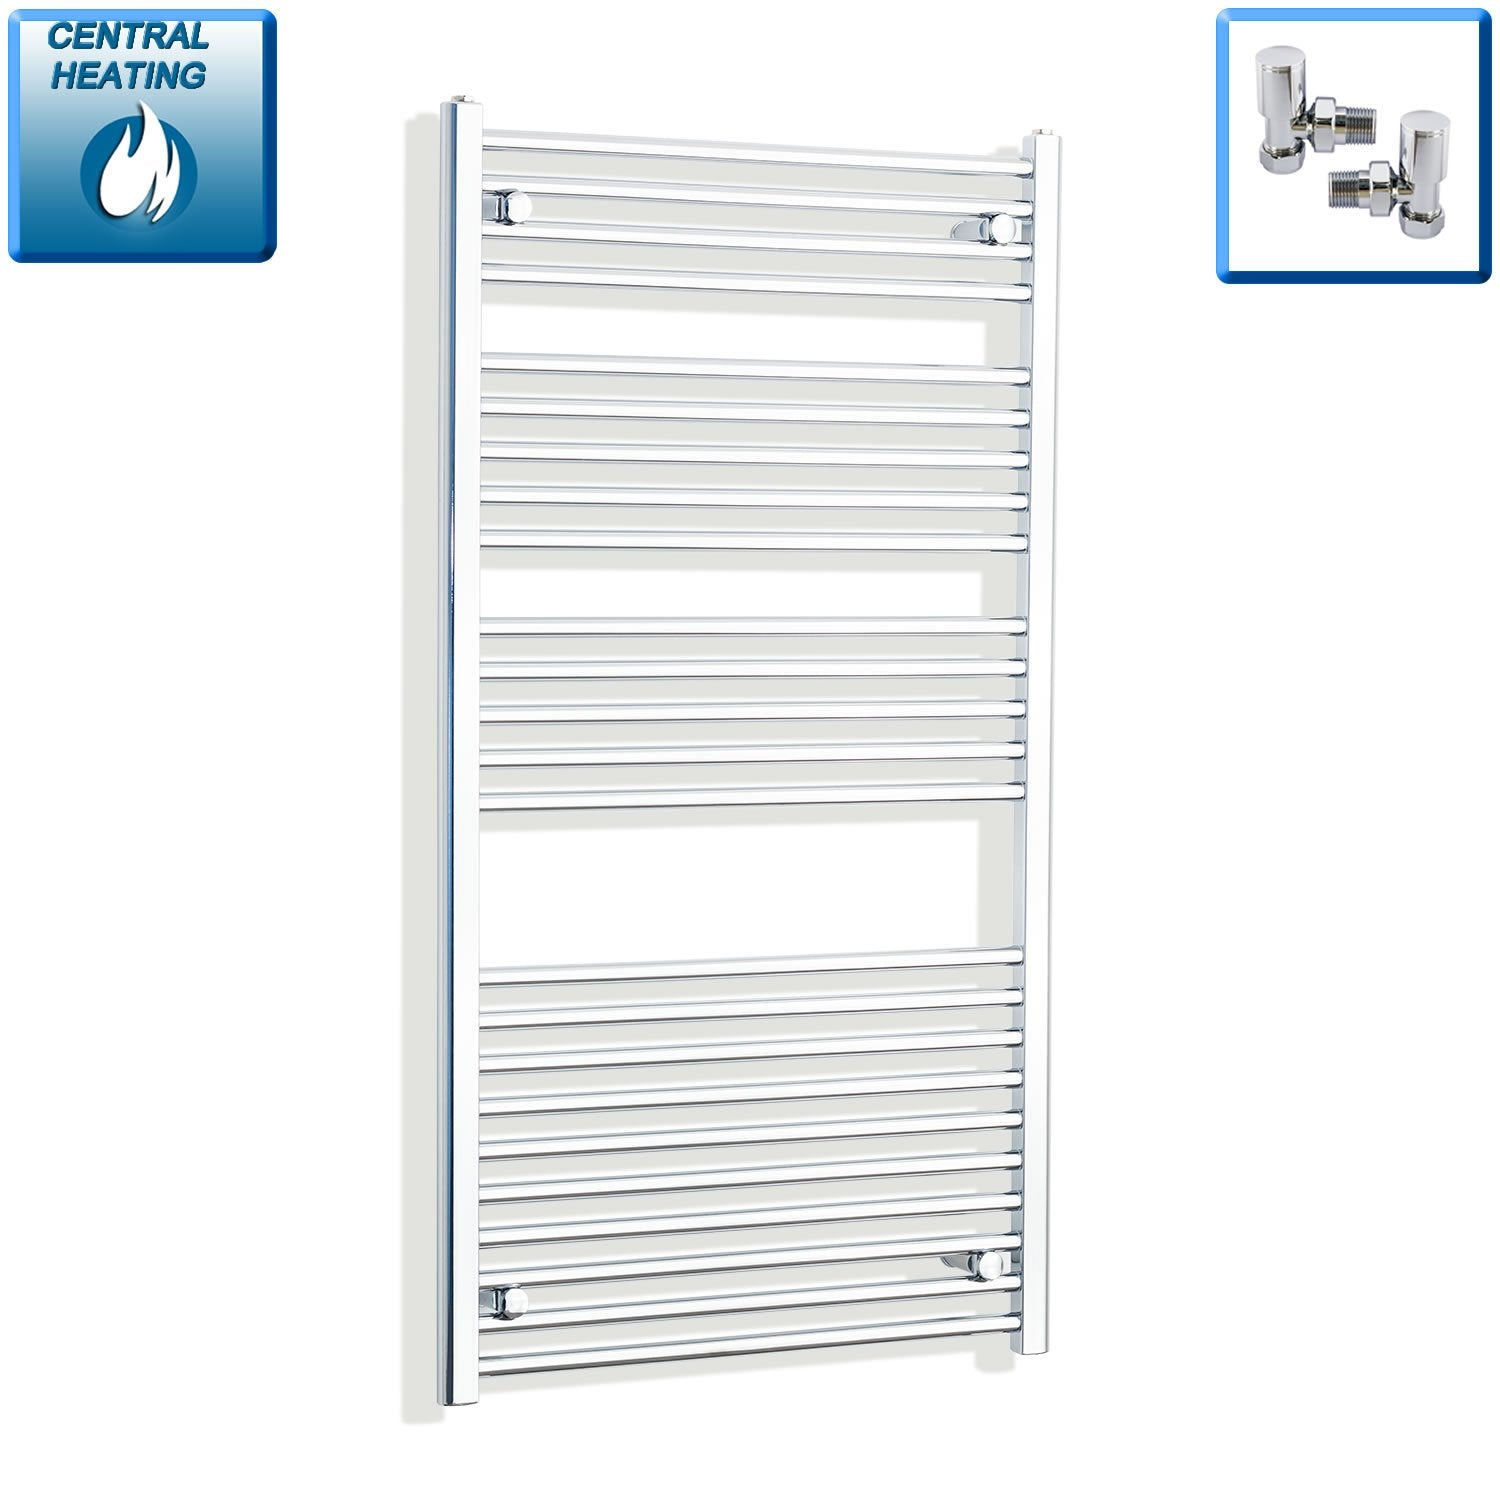 750mm Wide 1300mm High Curved Chrome Heated Towel Rail Radiator HTR,With Angled Valve